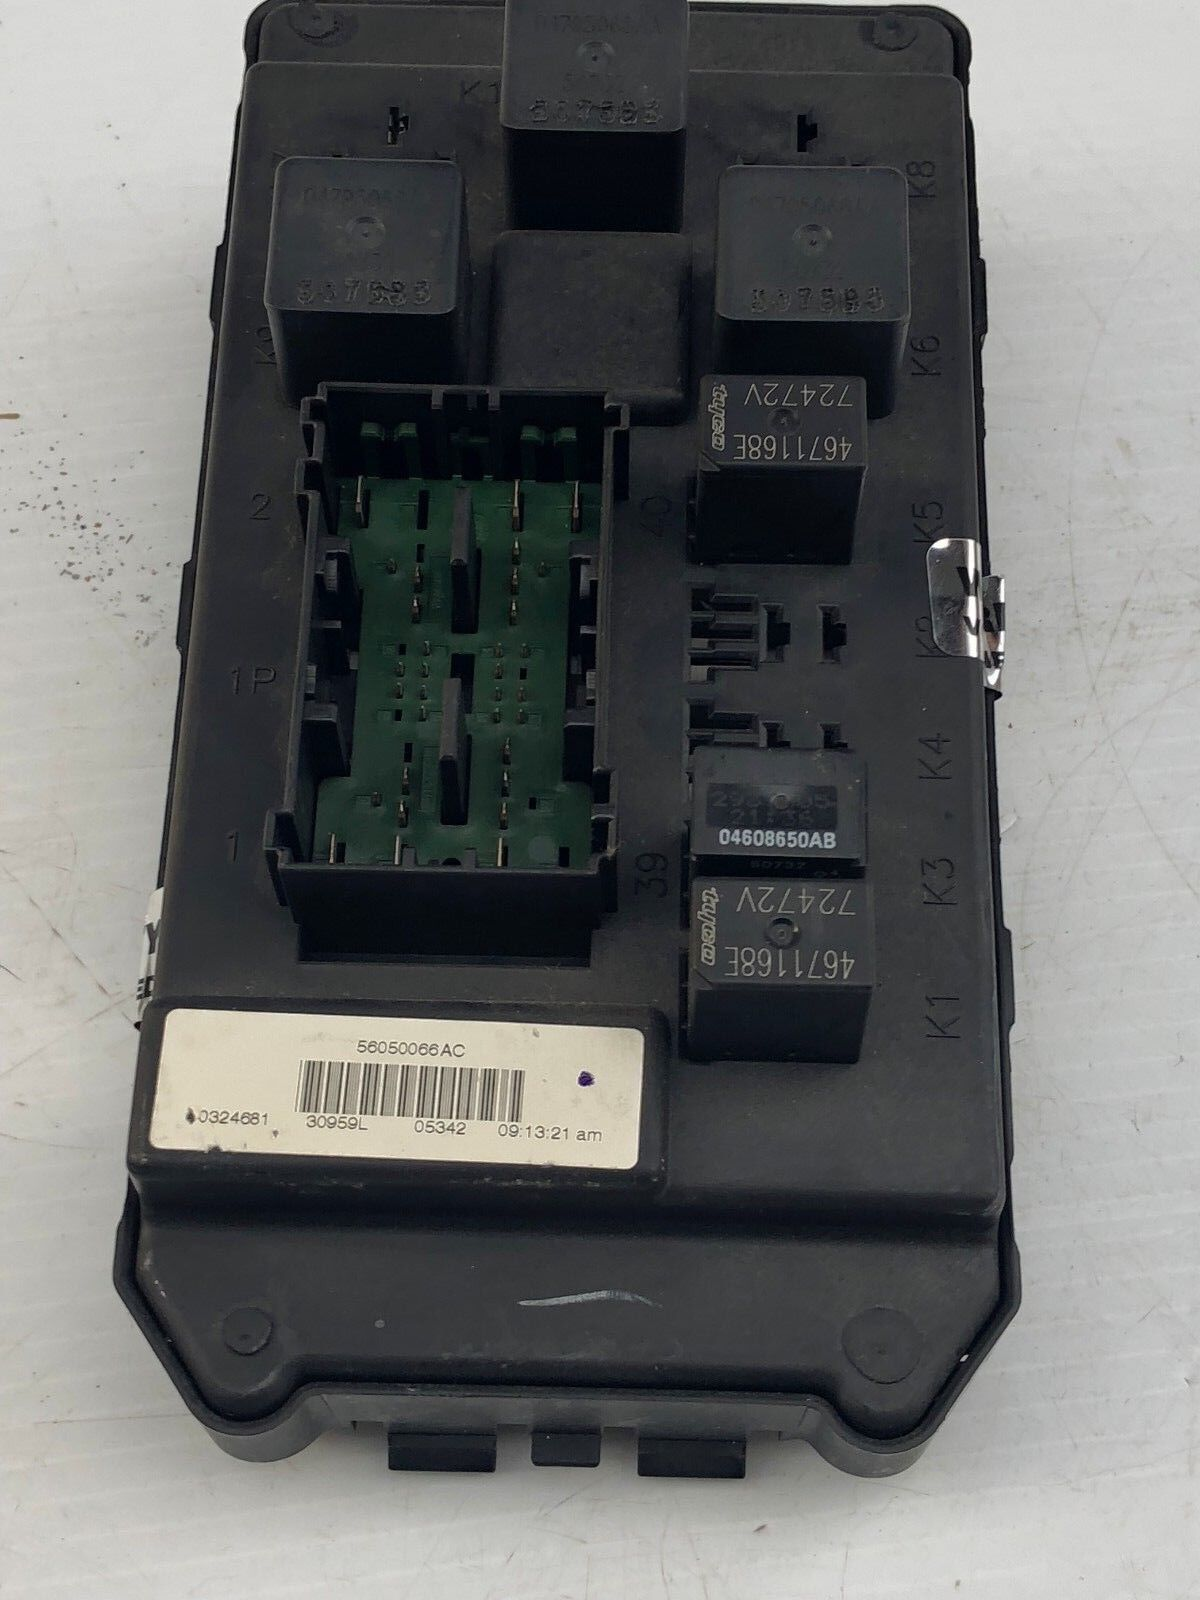 Used Jeep Commander Computers And Cruise Control Parts For Sale Fuse Relay Box Enclosure 2006 Grand Cherokee Module 56050066ac Oem